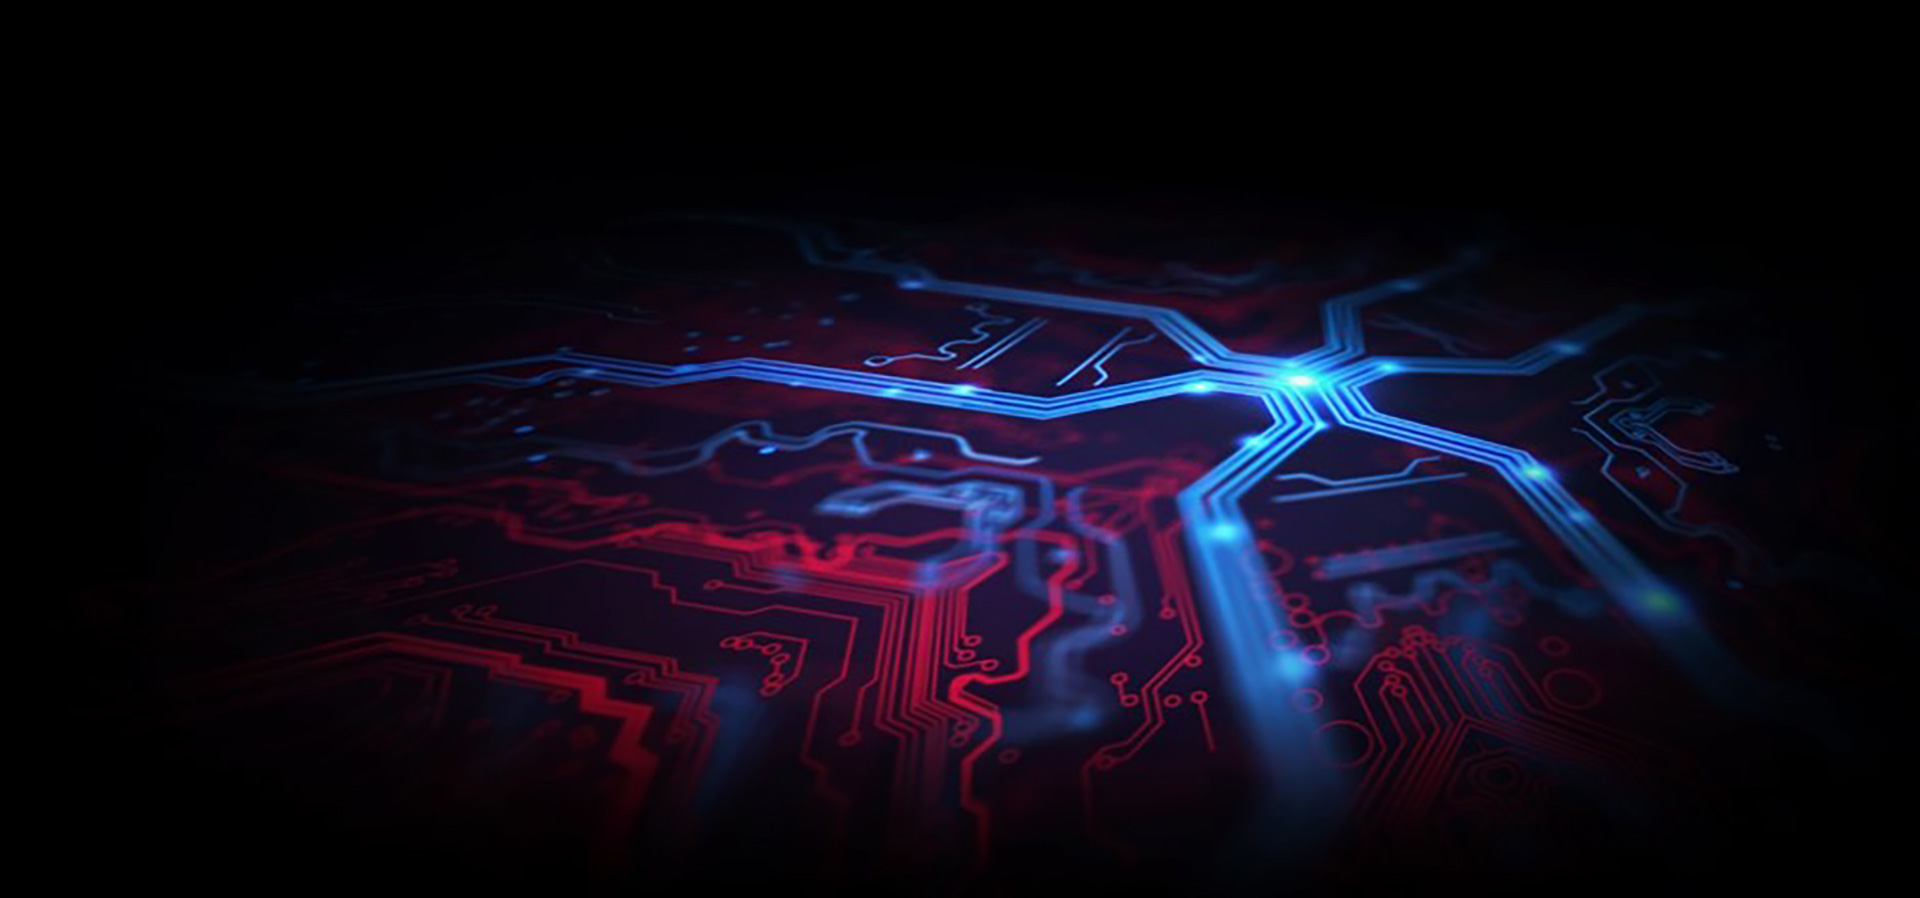 Graphic Showing Red and Blue Circuitry